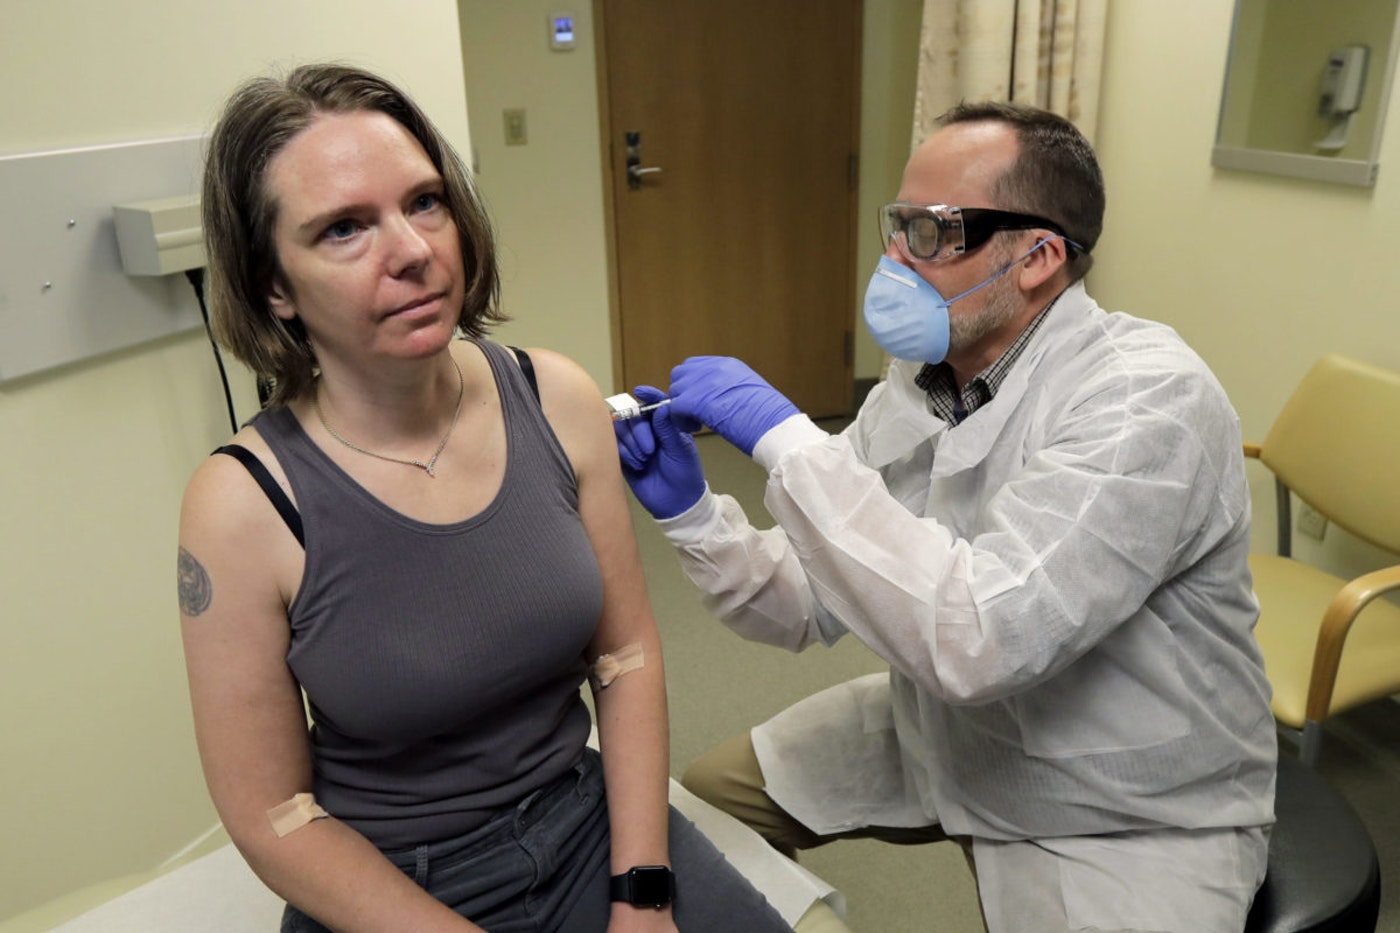 In this March 16, 2020 file photo, a pharmacist gives Jennifer Haller, left, the first shot in the first-stage safety study clinical trial of a potential vaccine for COVID-19, the disease caused by the new coronavirus, at the Kaiser Permanente Washington Health Research Institute in Seattle. The world's biggest COVID-19 vaccine test got underway July 27 with the first of 30,000 planned volunteers. (AP Photo/Ted S. Warren, File)